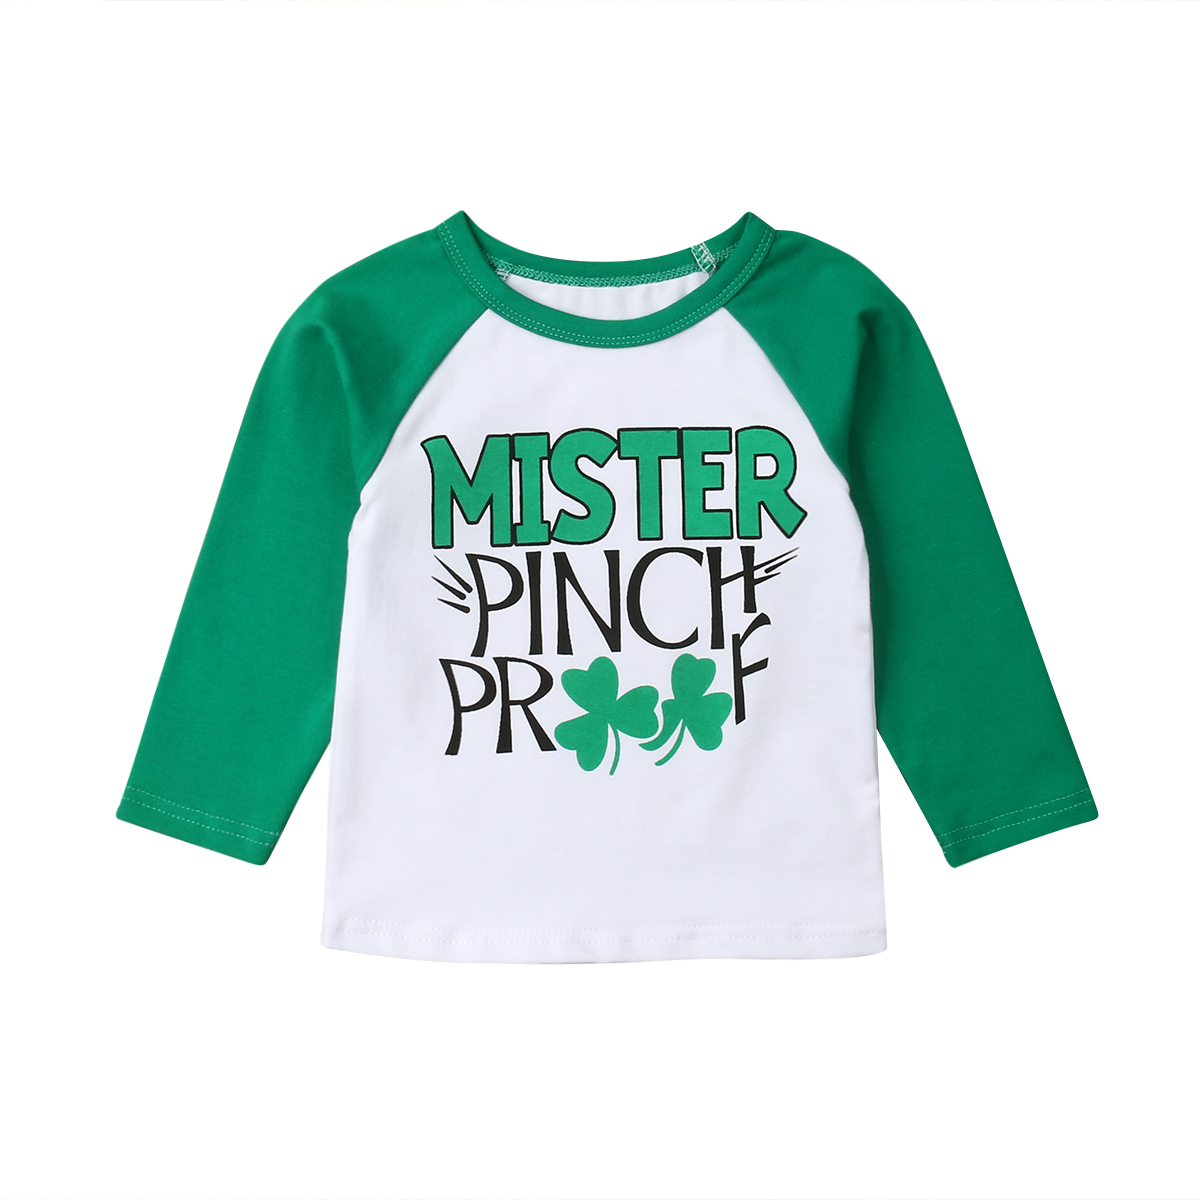 UK St Patrick/'s Day Procession Baby Boy Girl Vest Top Clover Pants Green Clothes